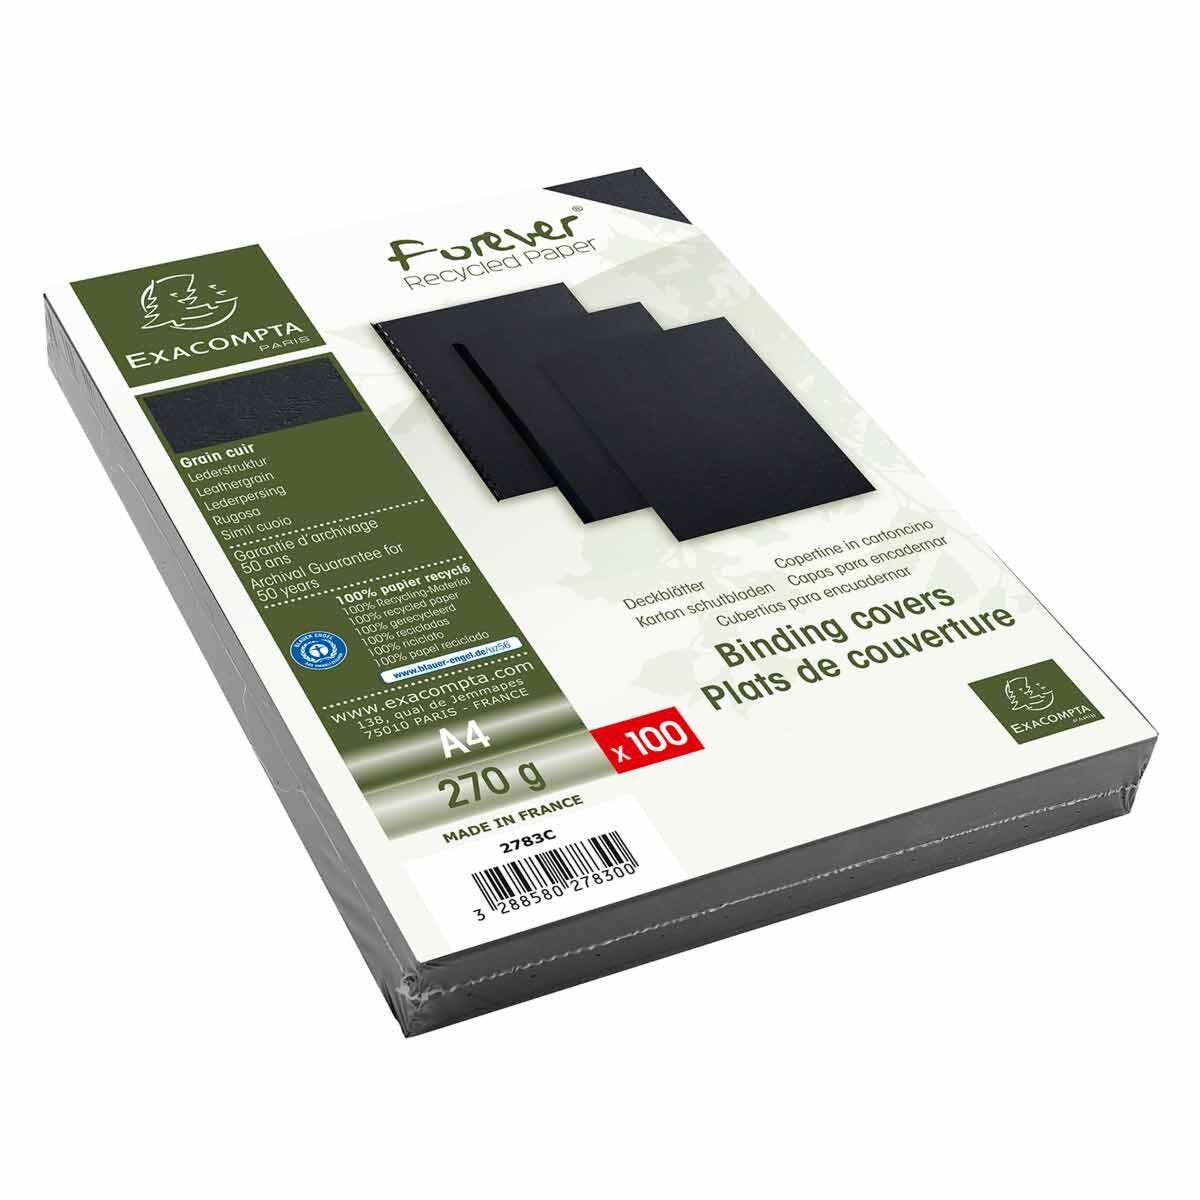 Exacompta Forever Leather Grain Covers A4 Pack of 400 Black